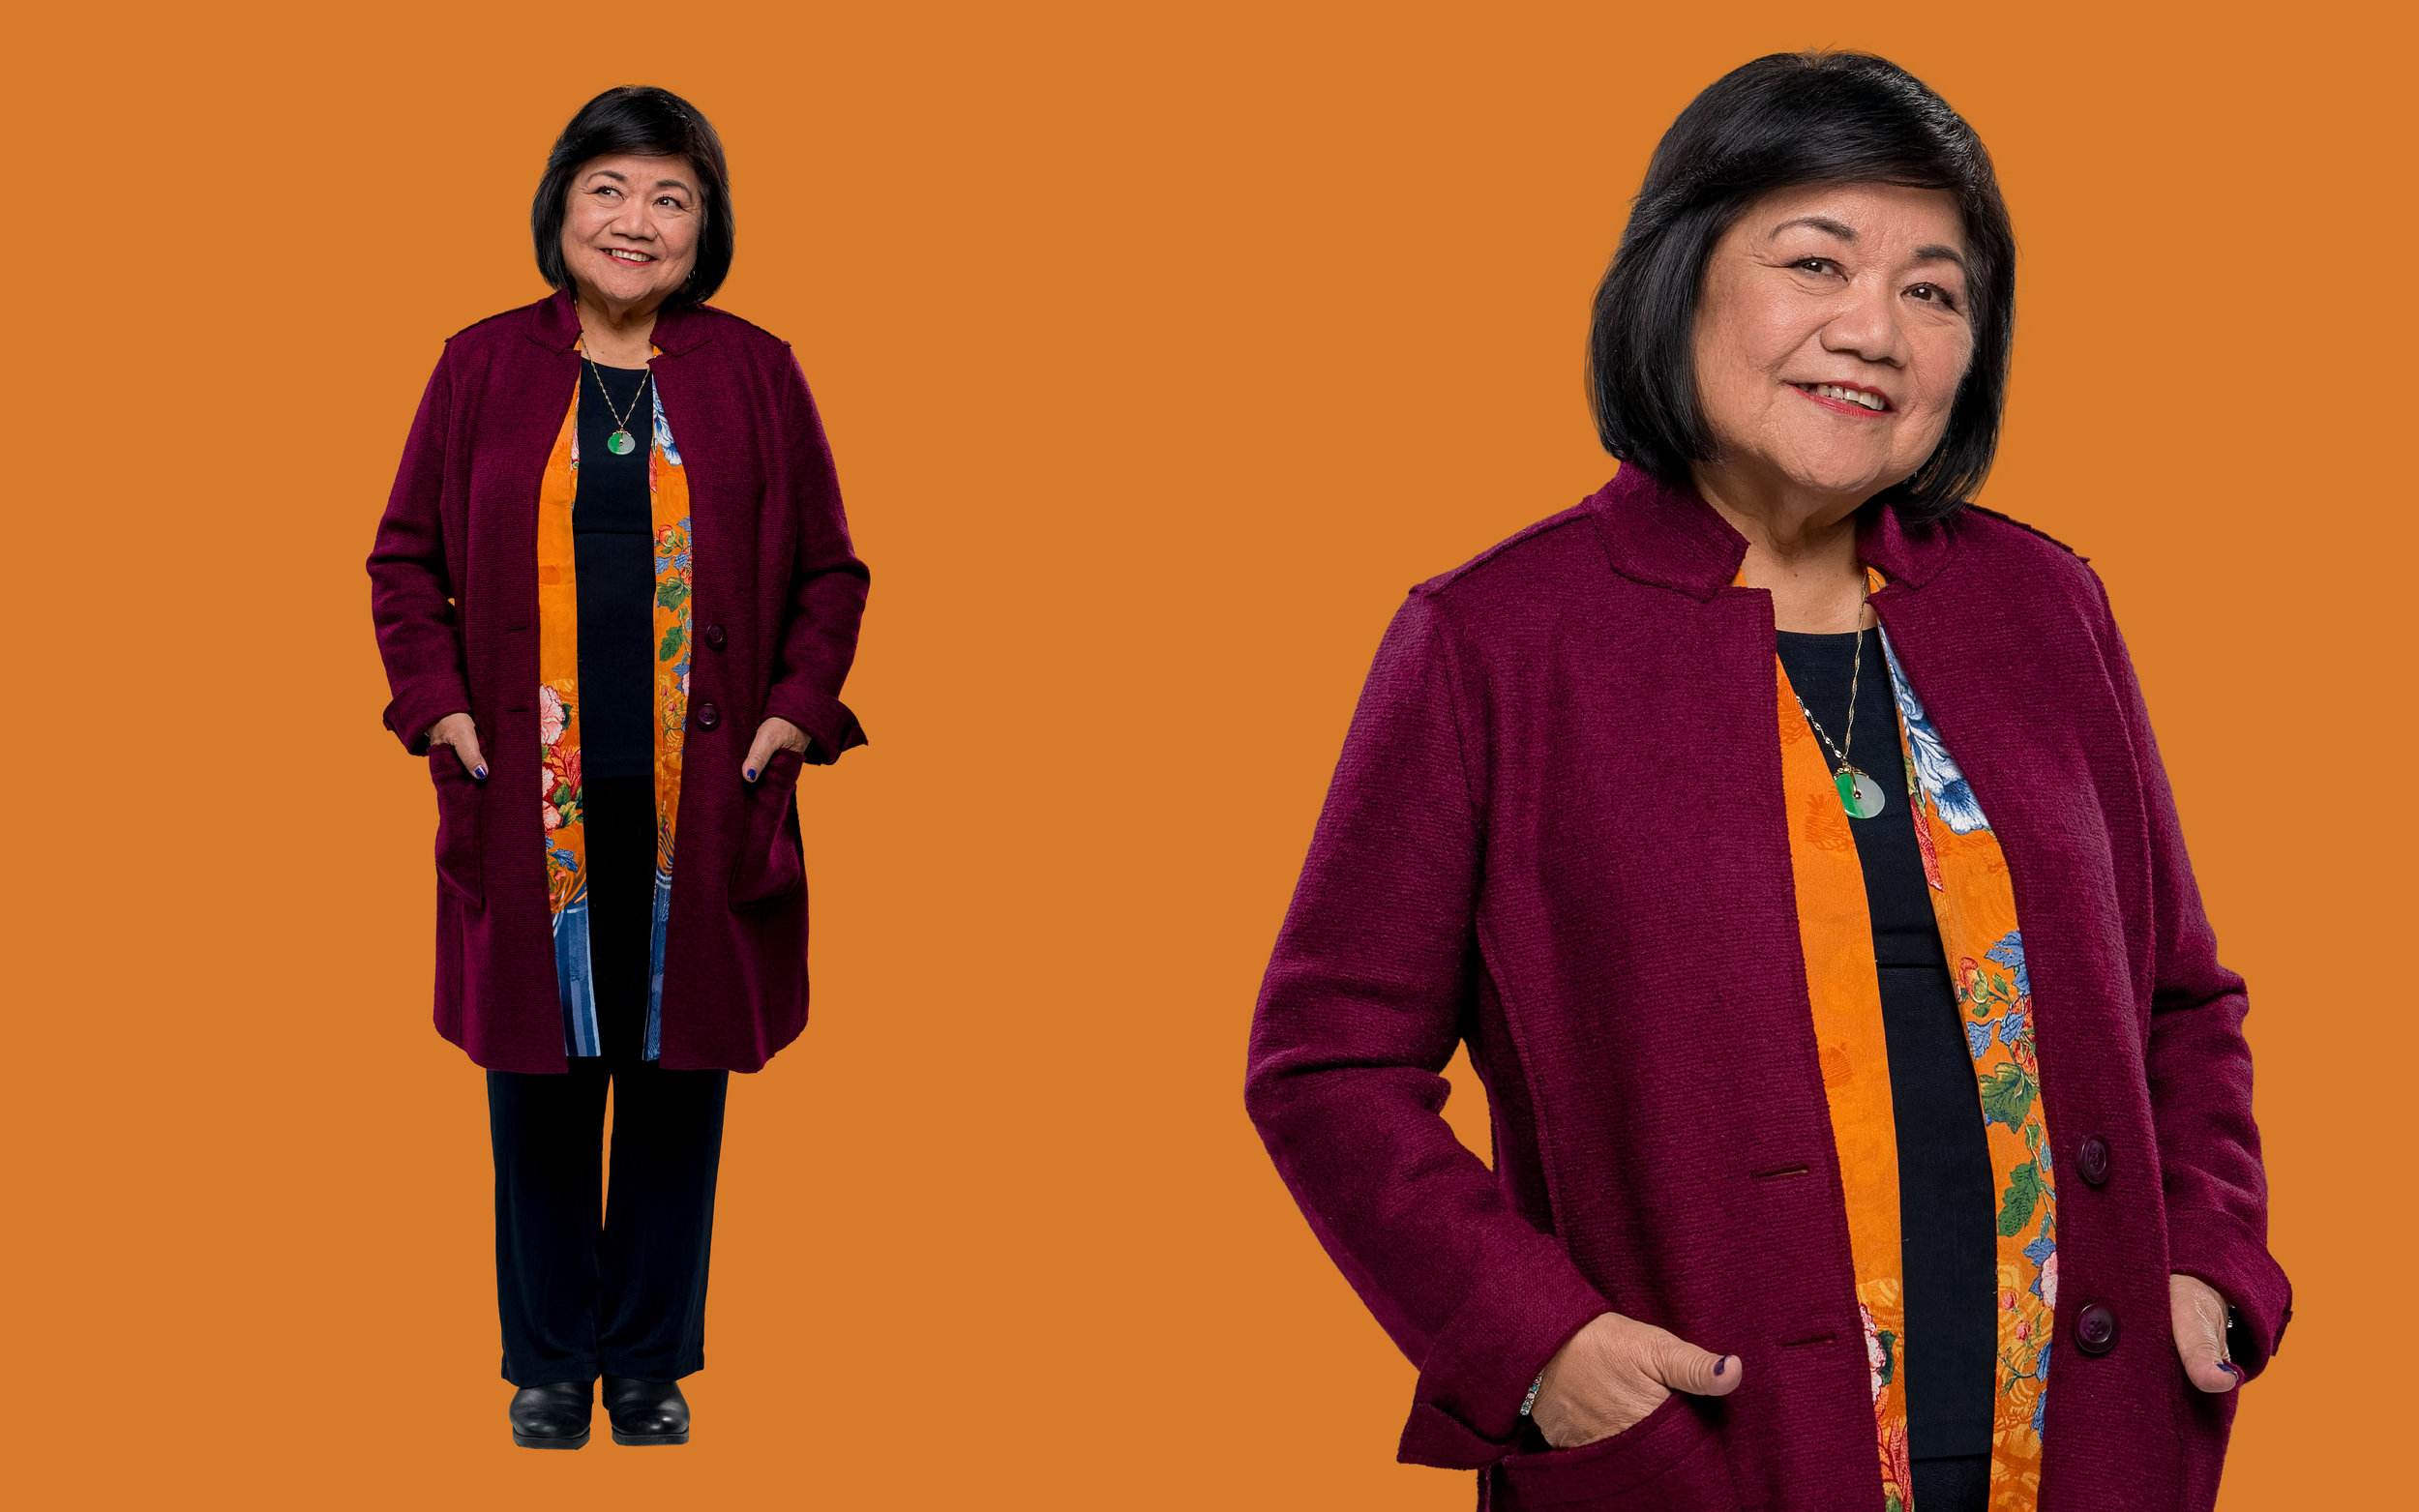 Most people don't know or don't even care that we are not at the table, Asian Americans. I learned that doing advocacy work was important. - —Patricia NeilsonDirector, Asian American Students Success ProgramUniversity of Massachusetts, BostonLEAP '97